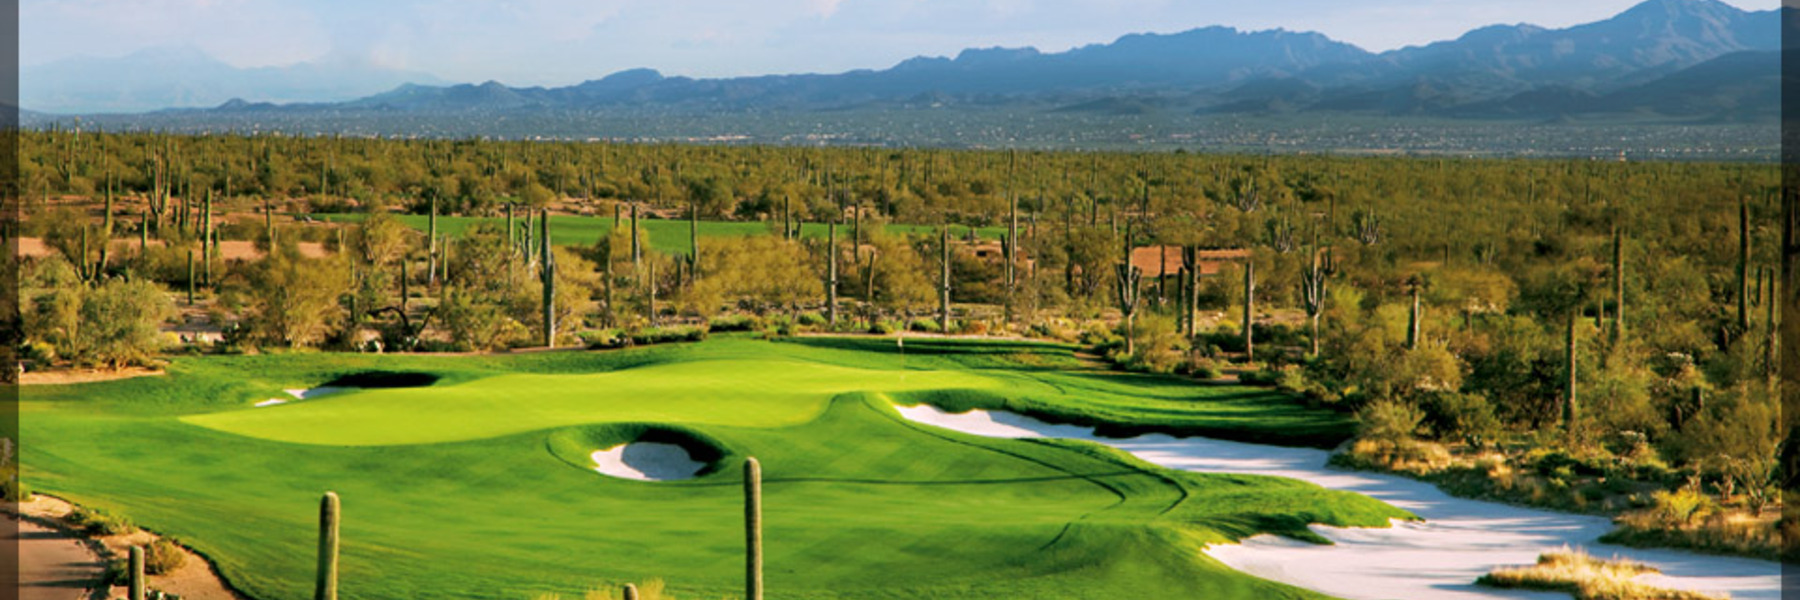 Golf Vacation Package - Luxury Villa + Dove Mtn/Vistoso/AZ National/Conquistador for $209!